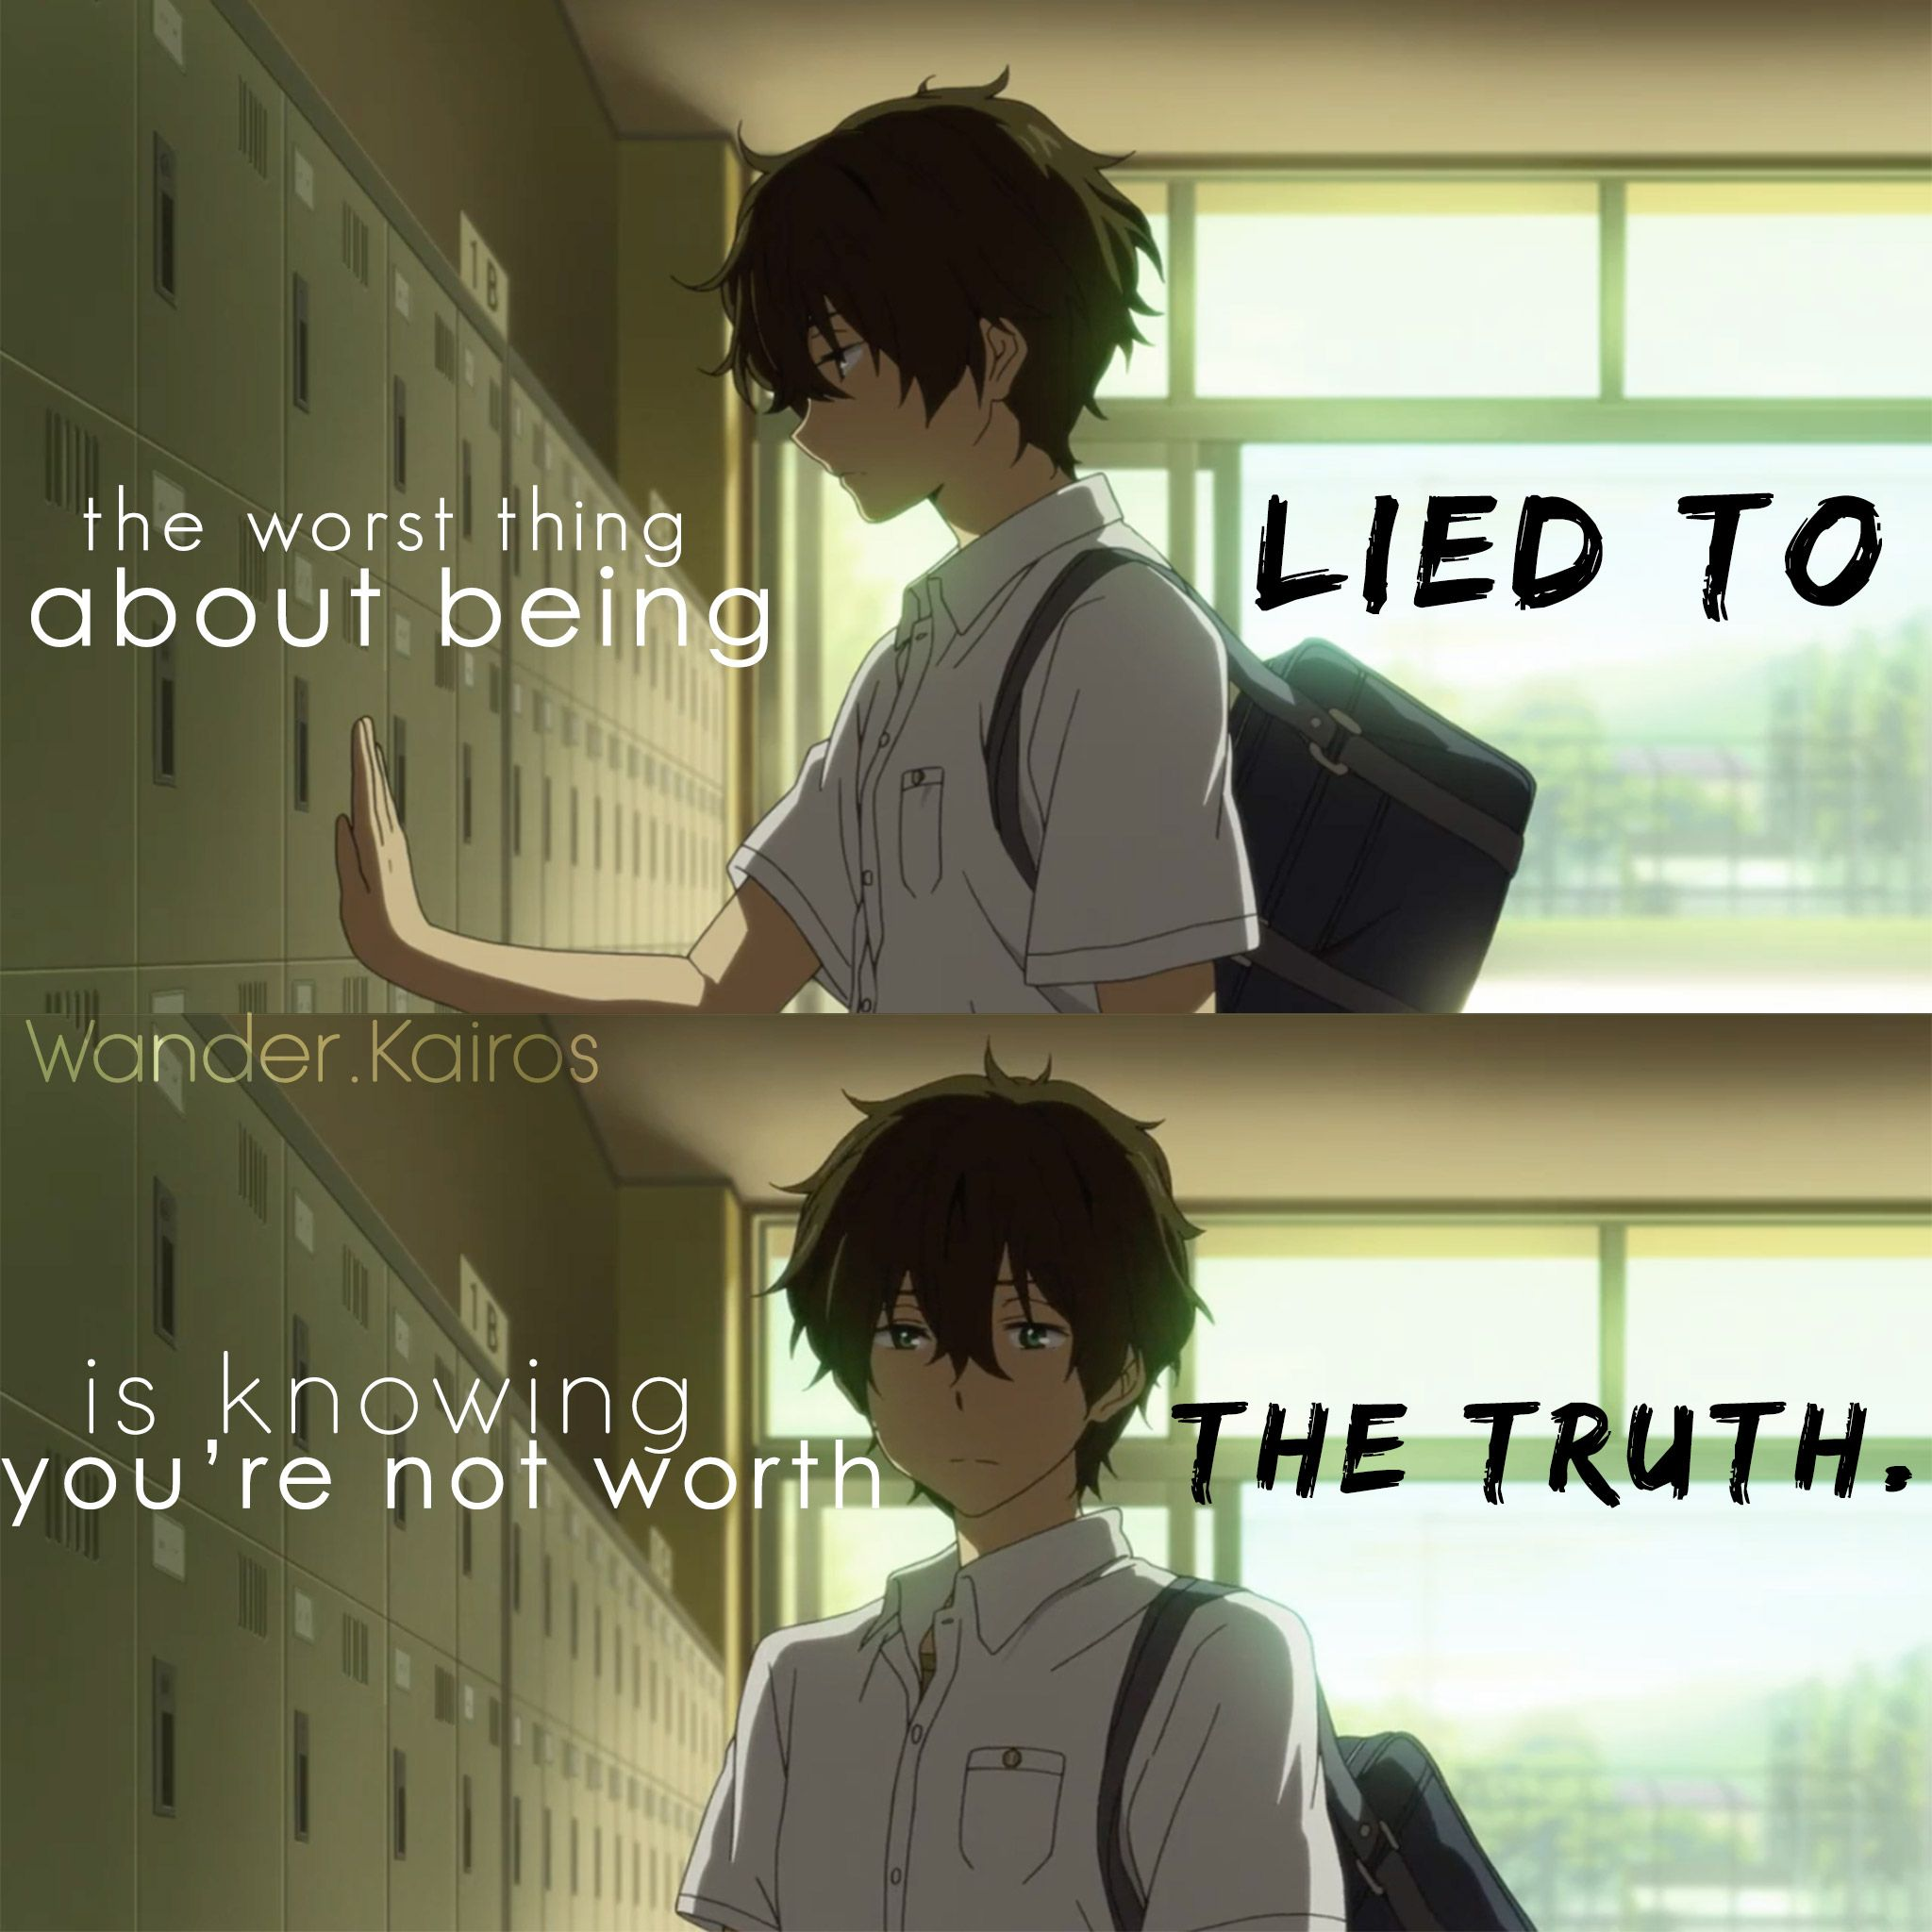 Best Anime Quotes On Life: 引用符/引用 (アニメ)